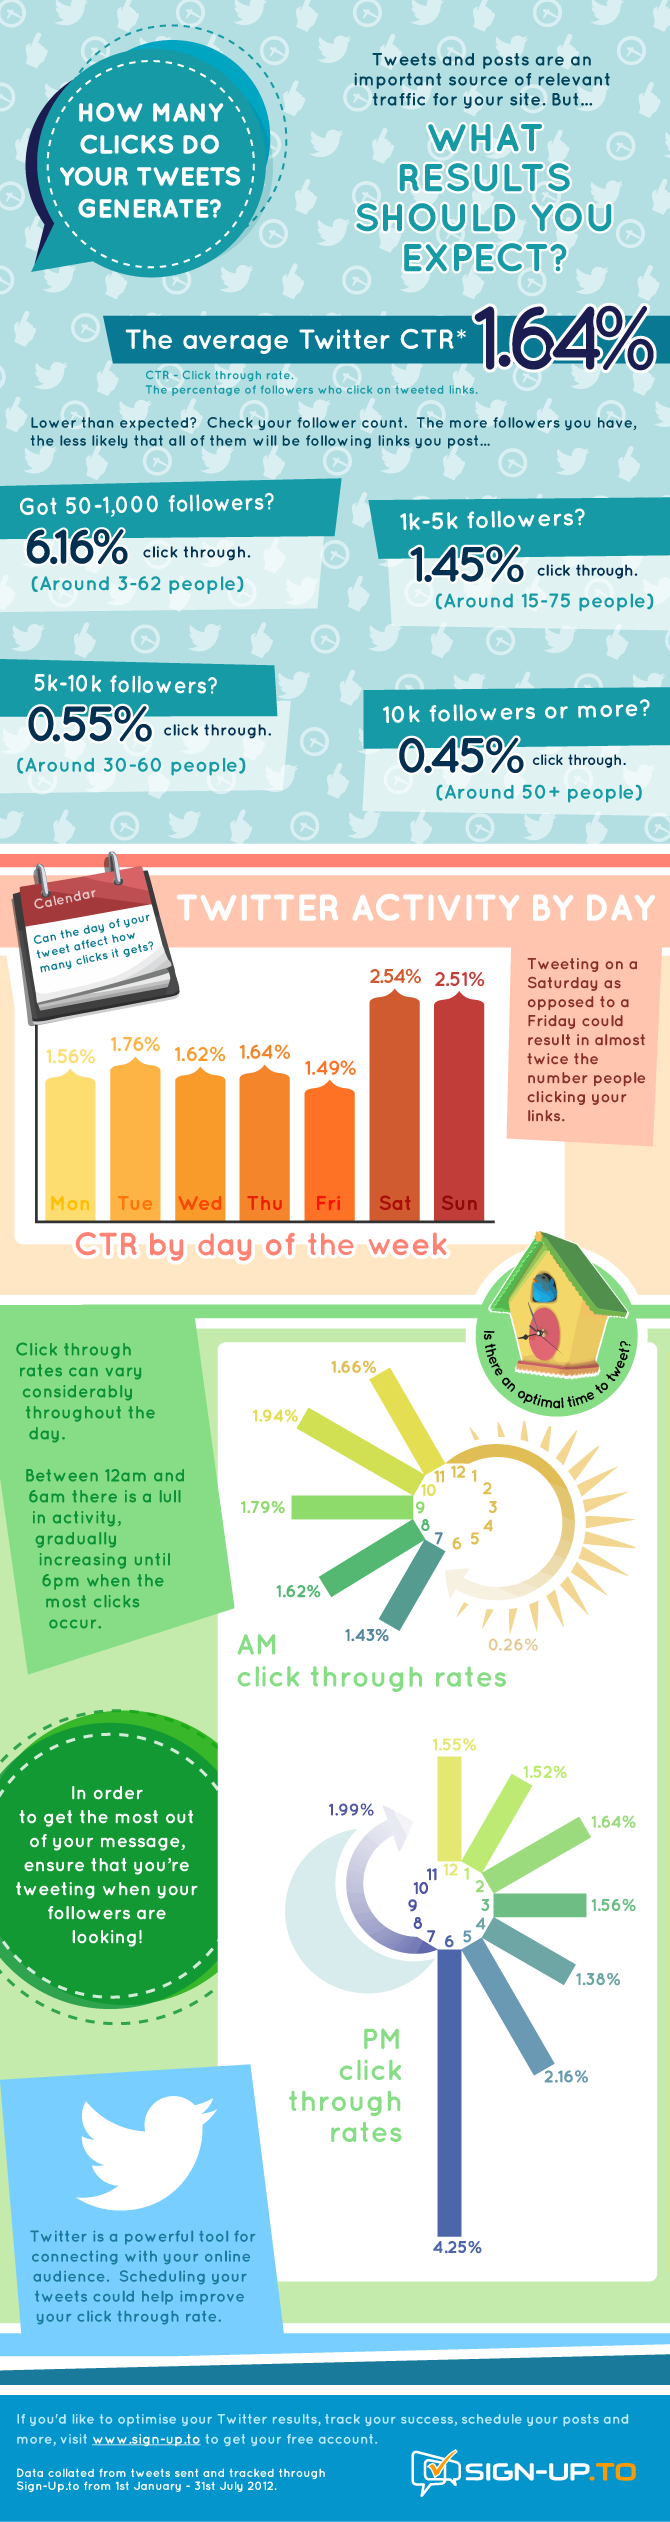 Twitter infographic showing average CTR, CTR by day of week, CTR by time of day.